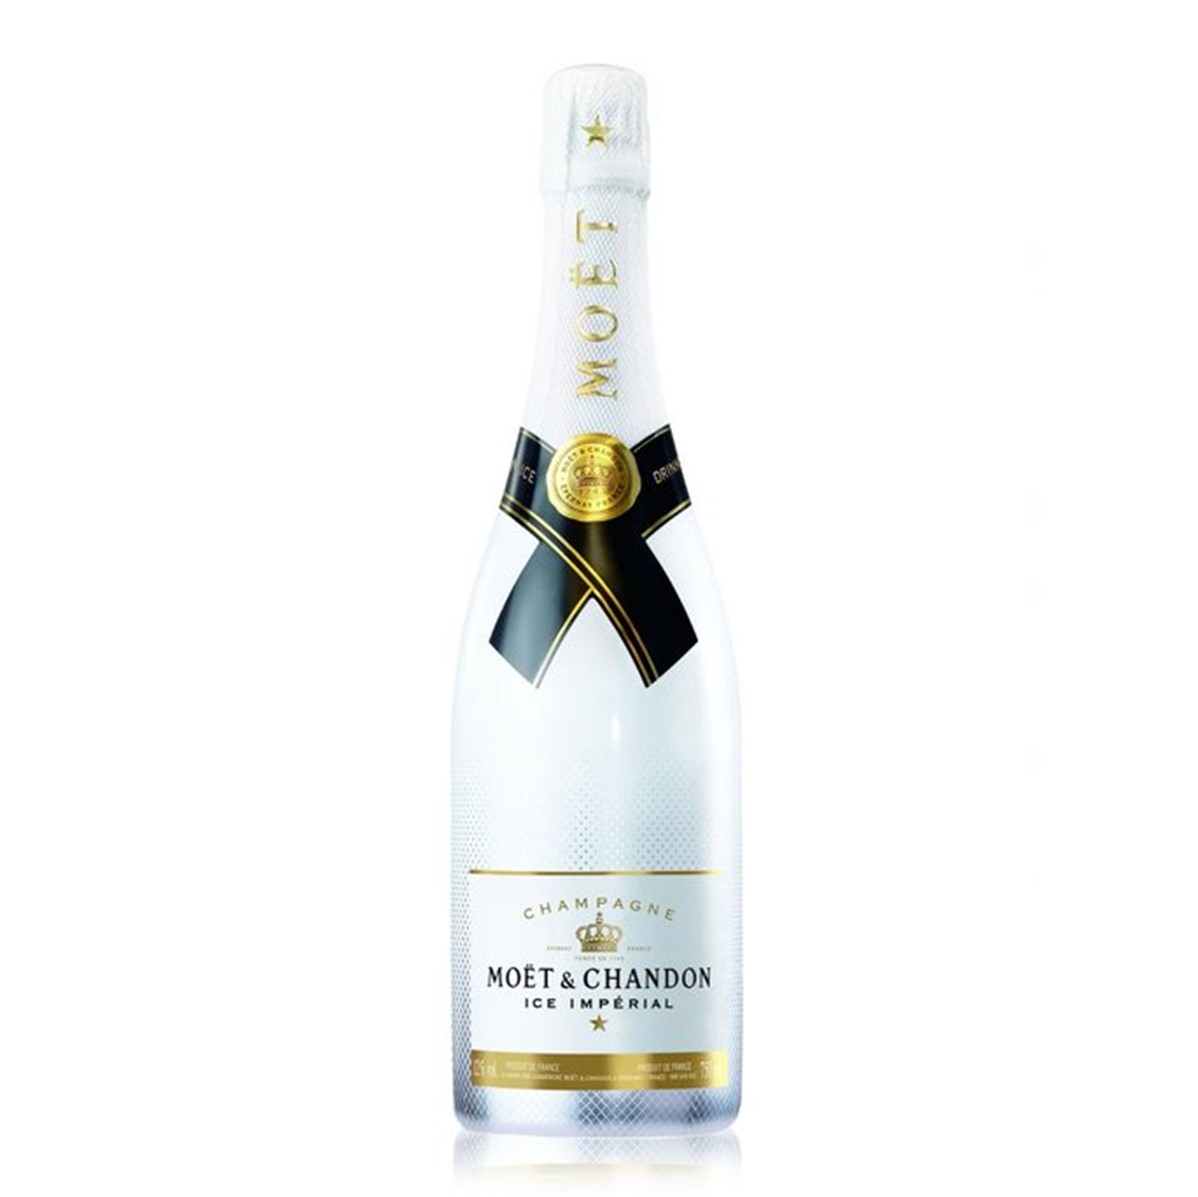 Moet & Chandon ICE Imperial - 750ml bottle